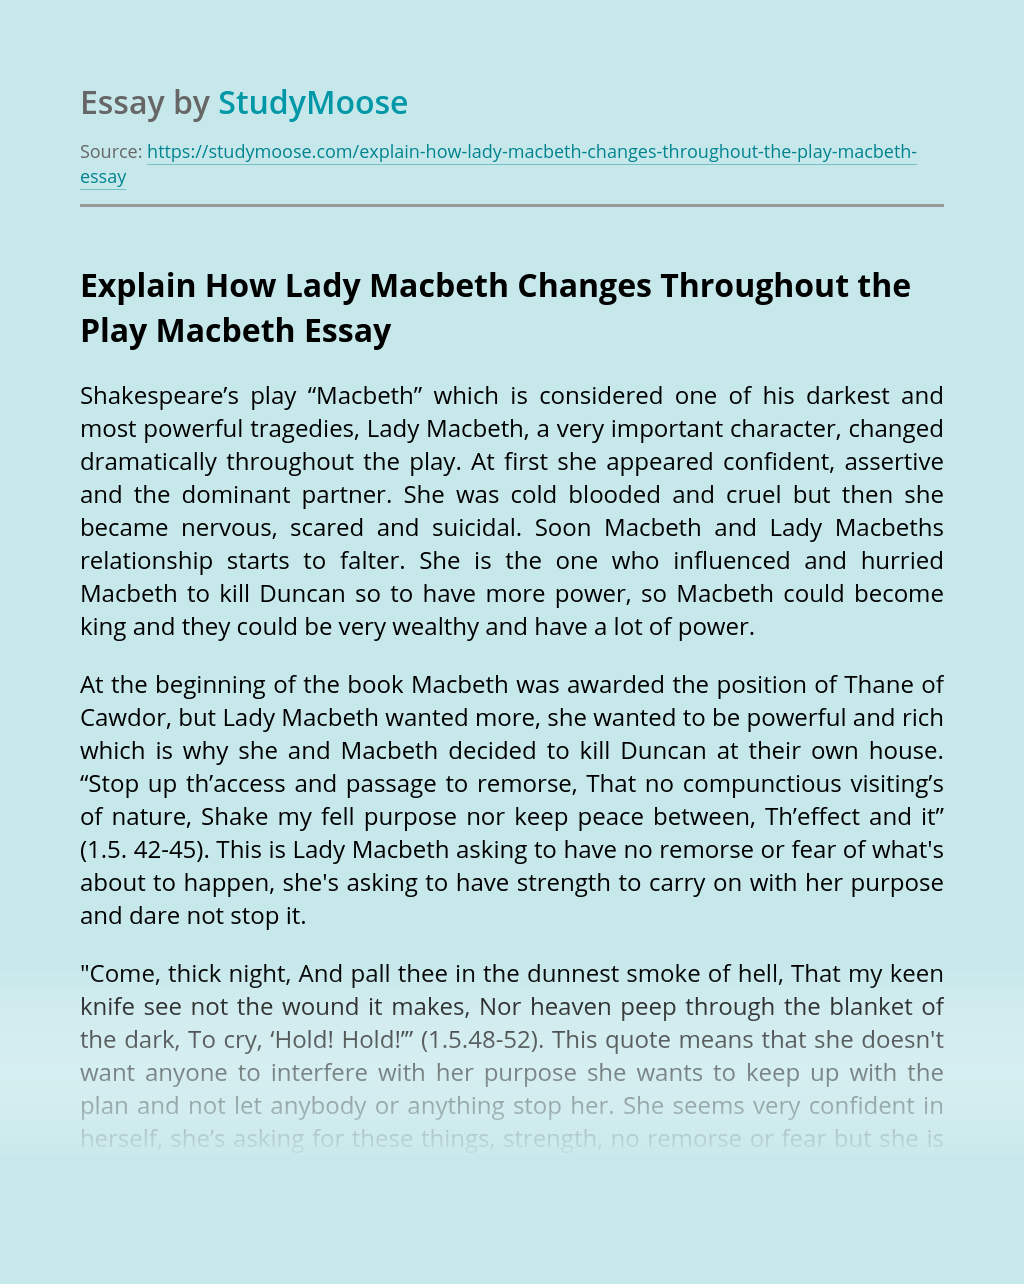 Explain How Lady Macbeth Changes Throughout the Play Macbeth